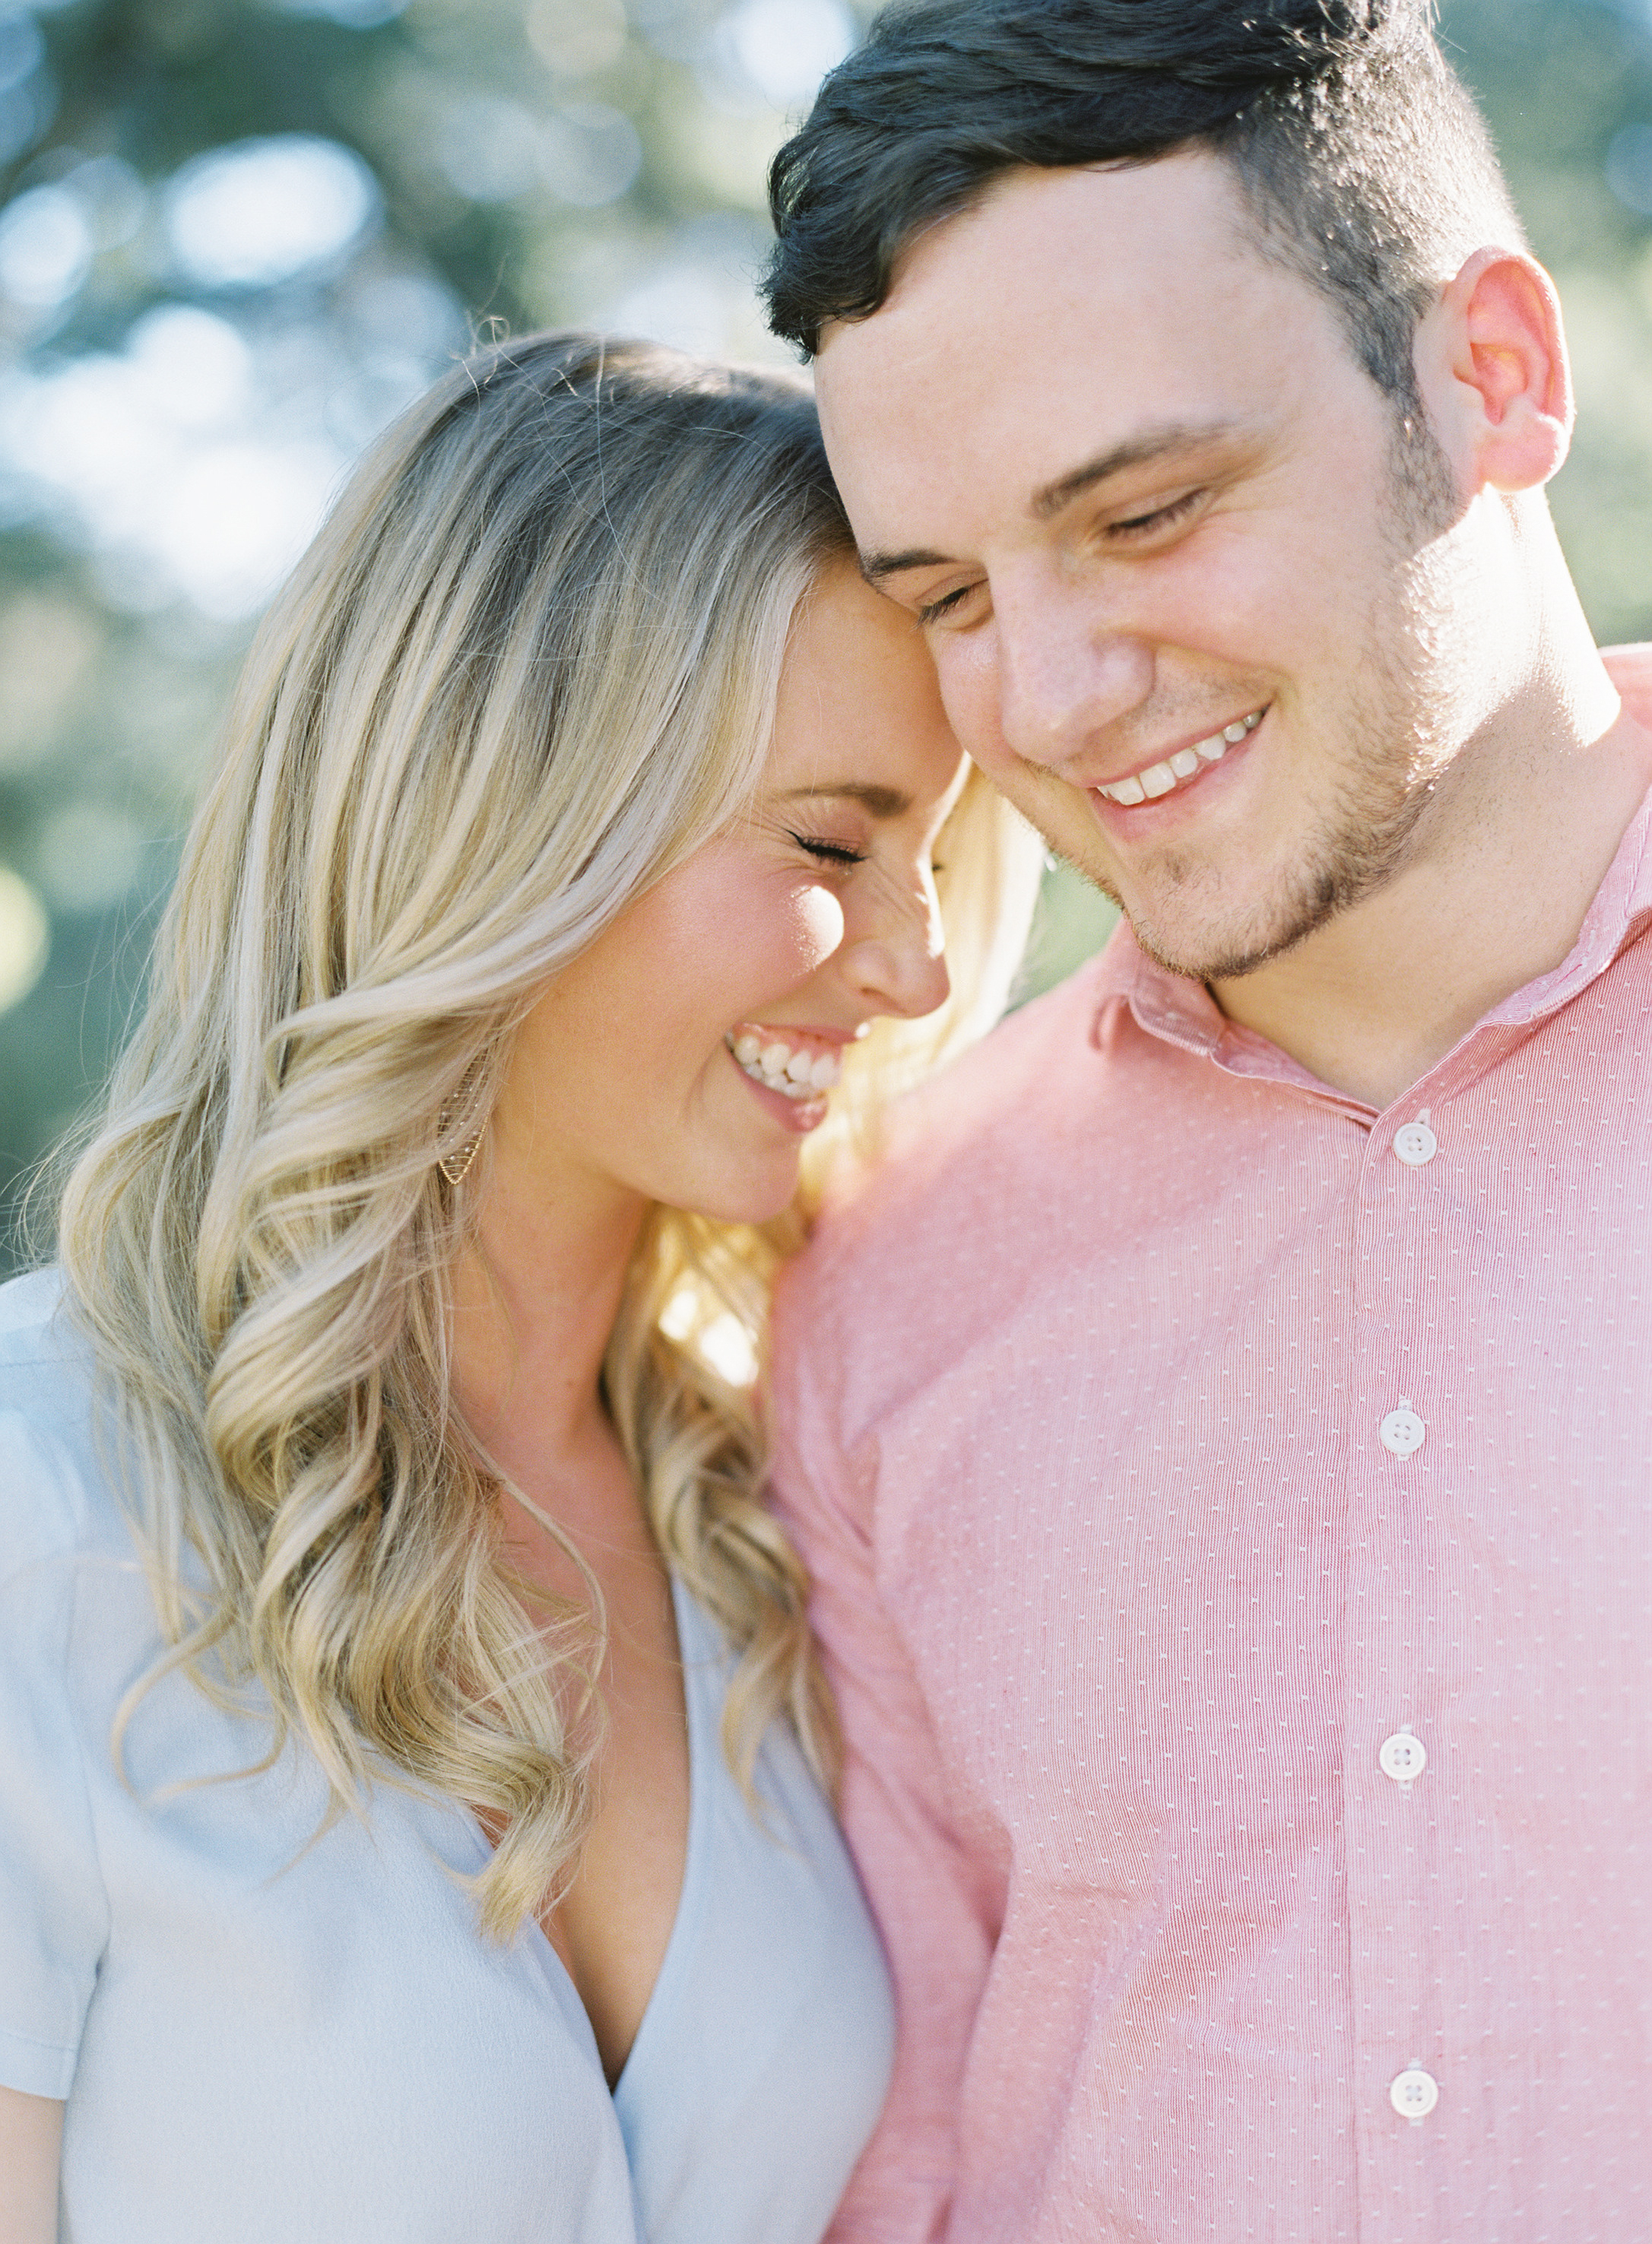 Taylor & Casey's Malibu Engagement-Carrie King Photographer-011.jpg